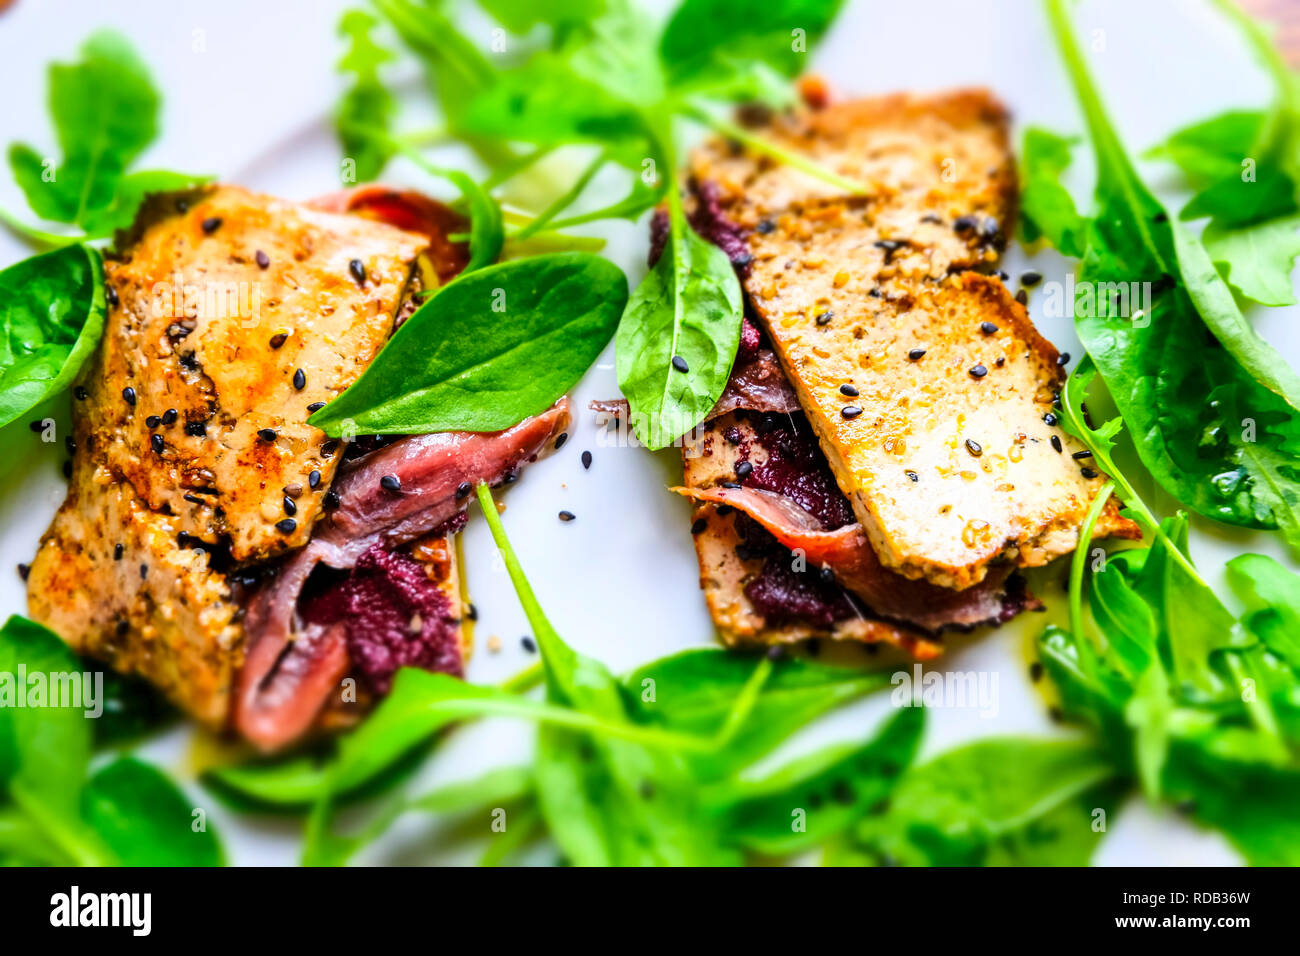 Tofu with anchovies, olive pate and corn salad. - Stock Image